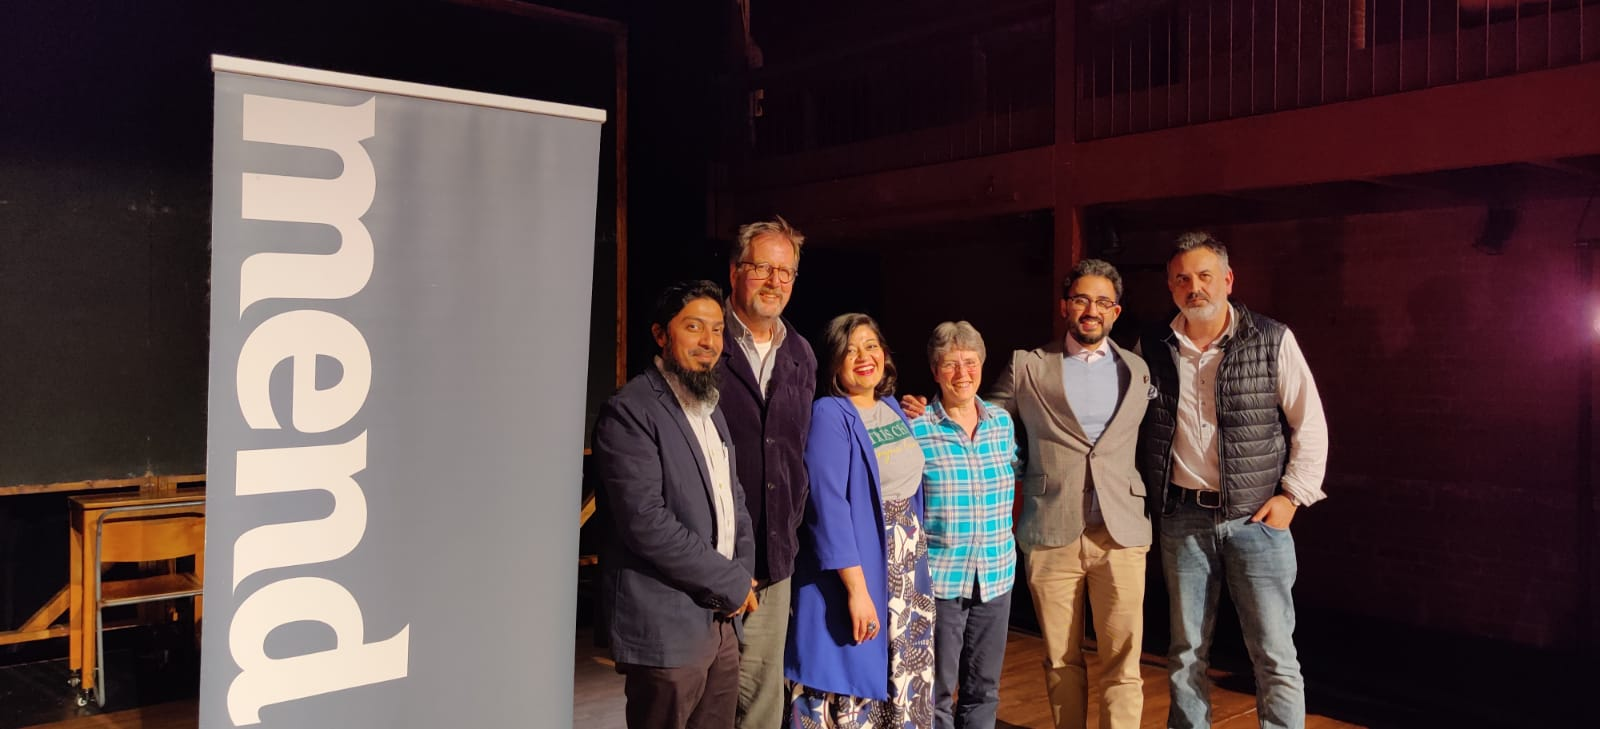 Trojan Horse Play – Oxford Panel Discussion (25/26th February 2020)